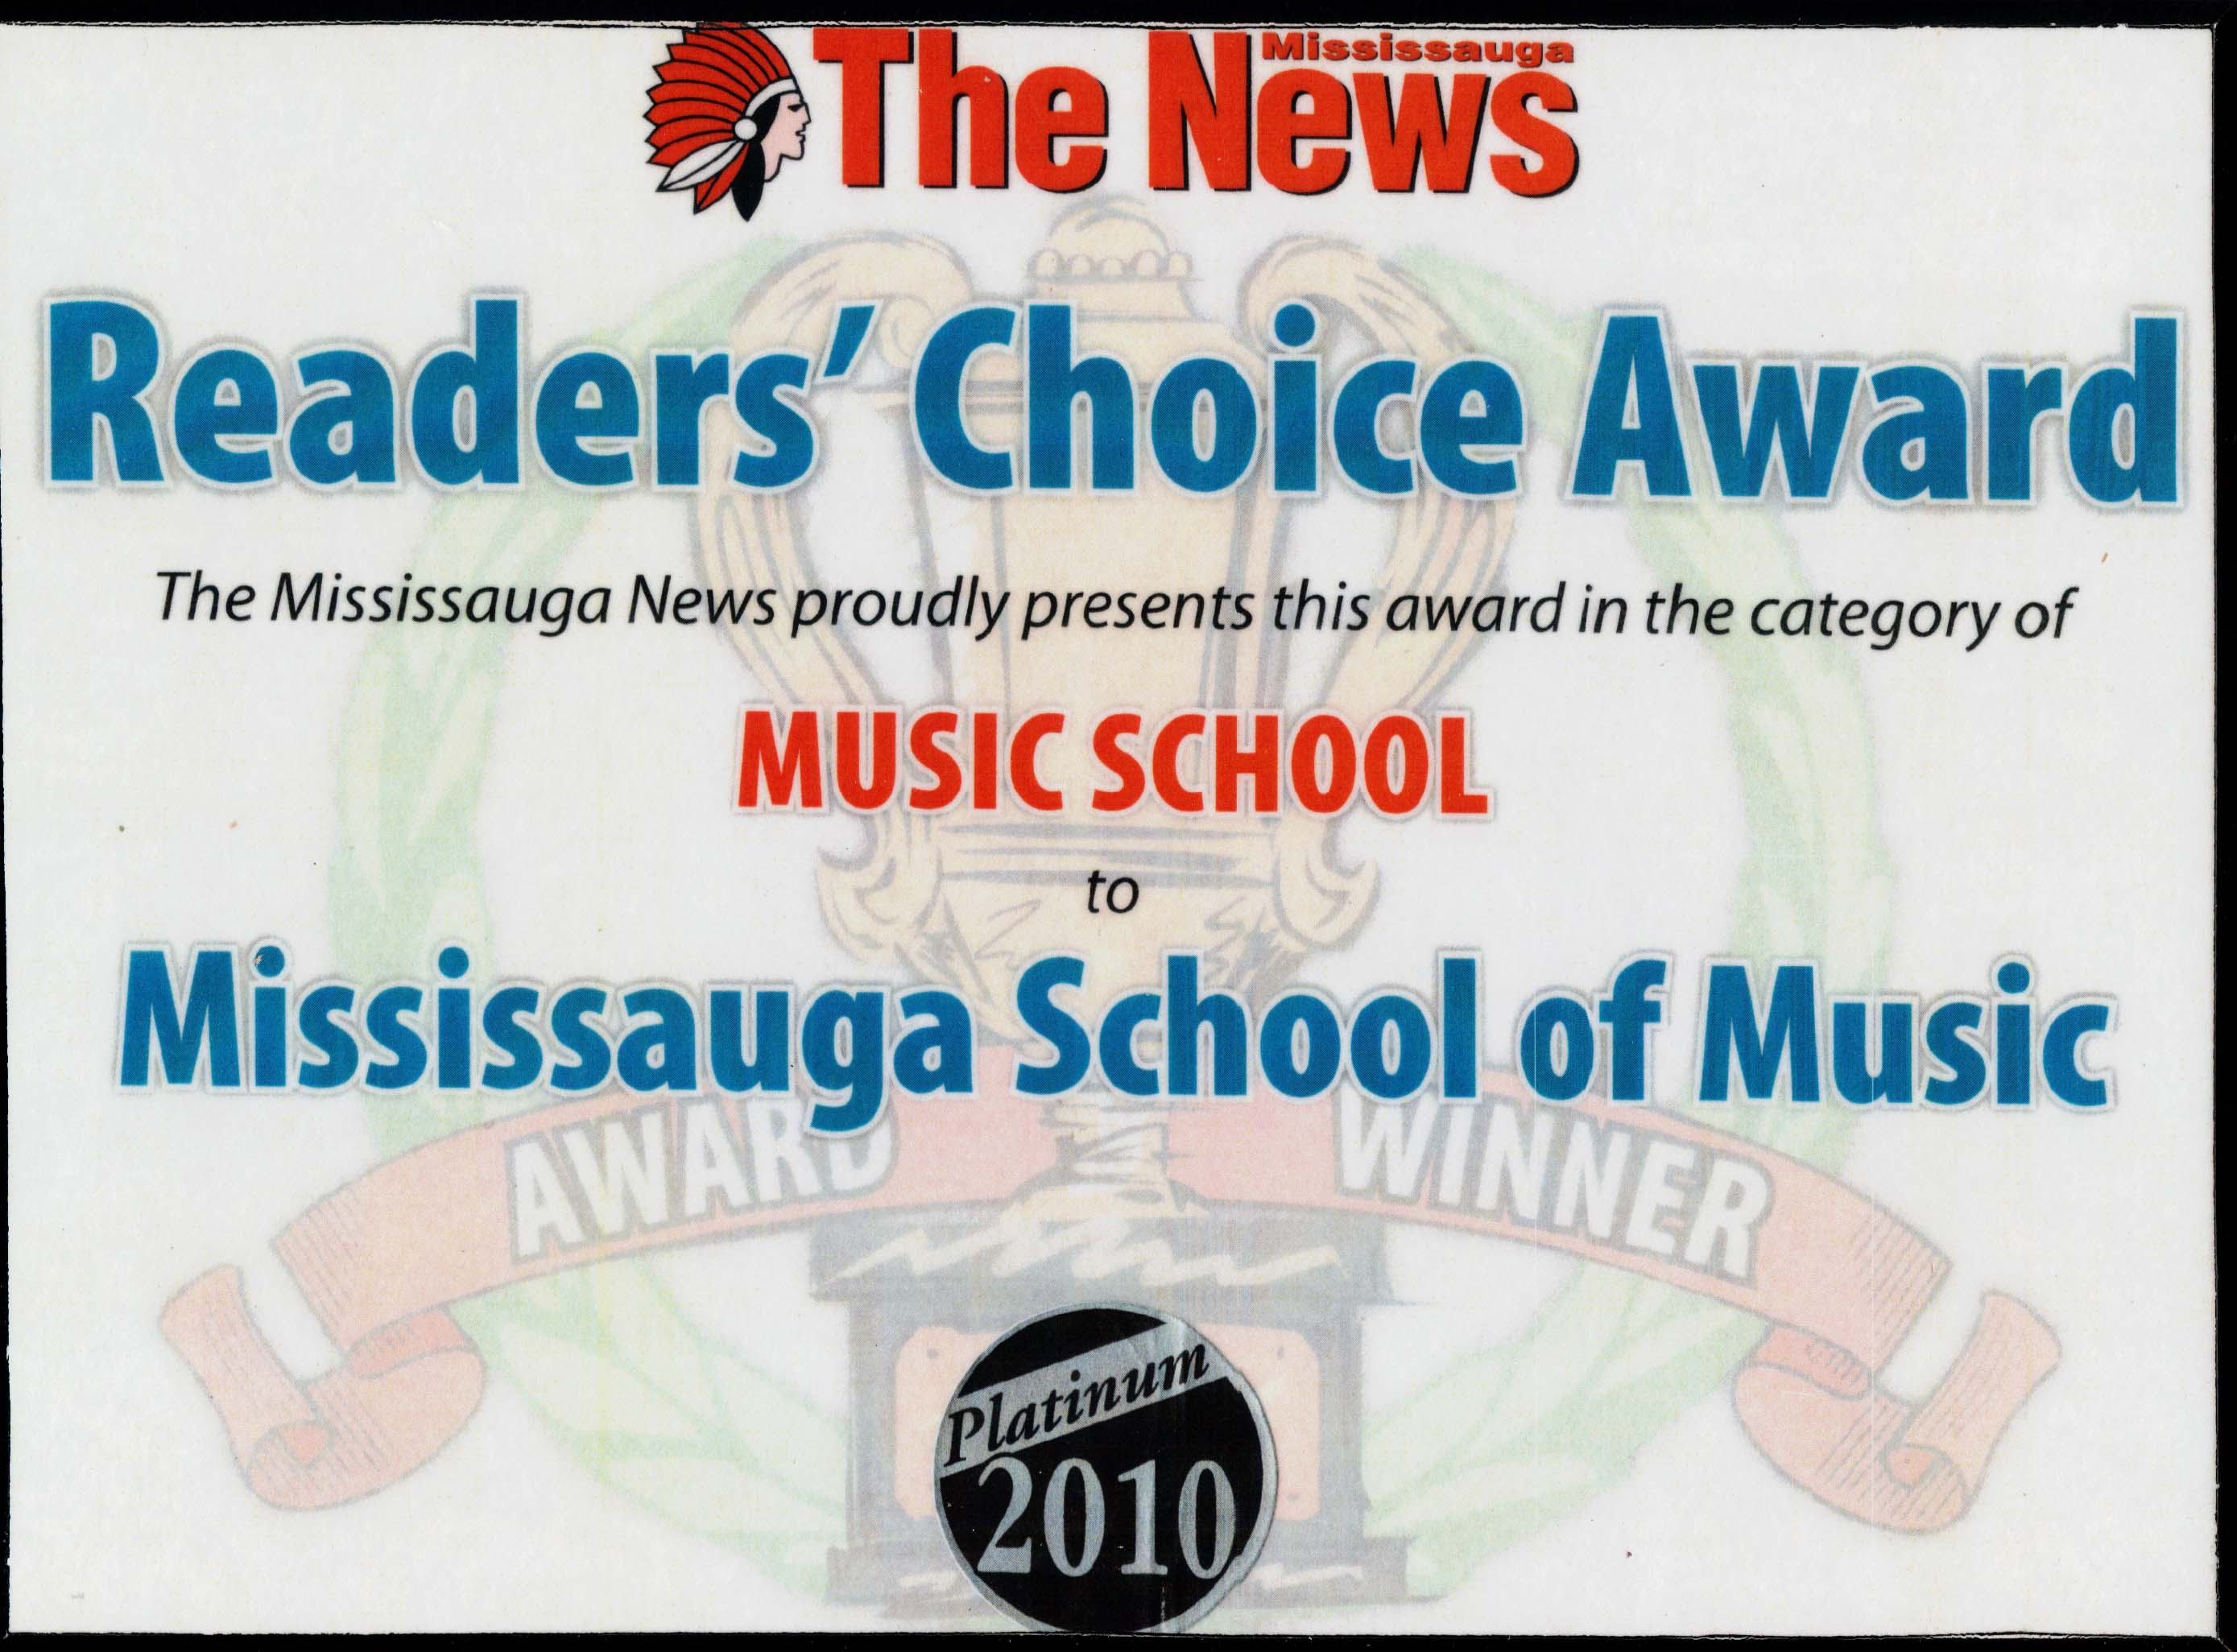 Mississauga School of Music #1 2010